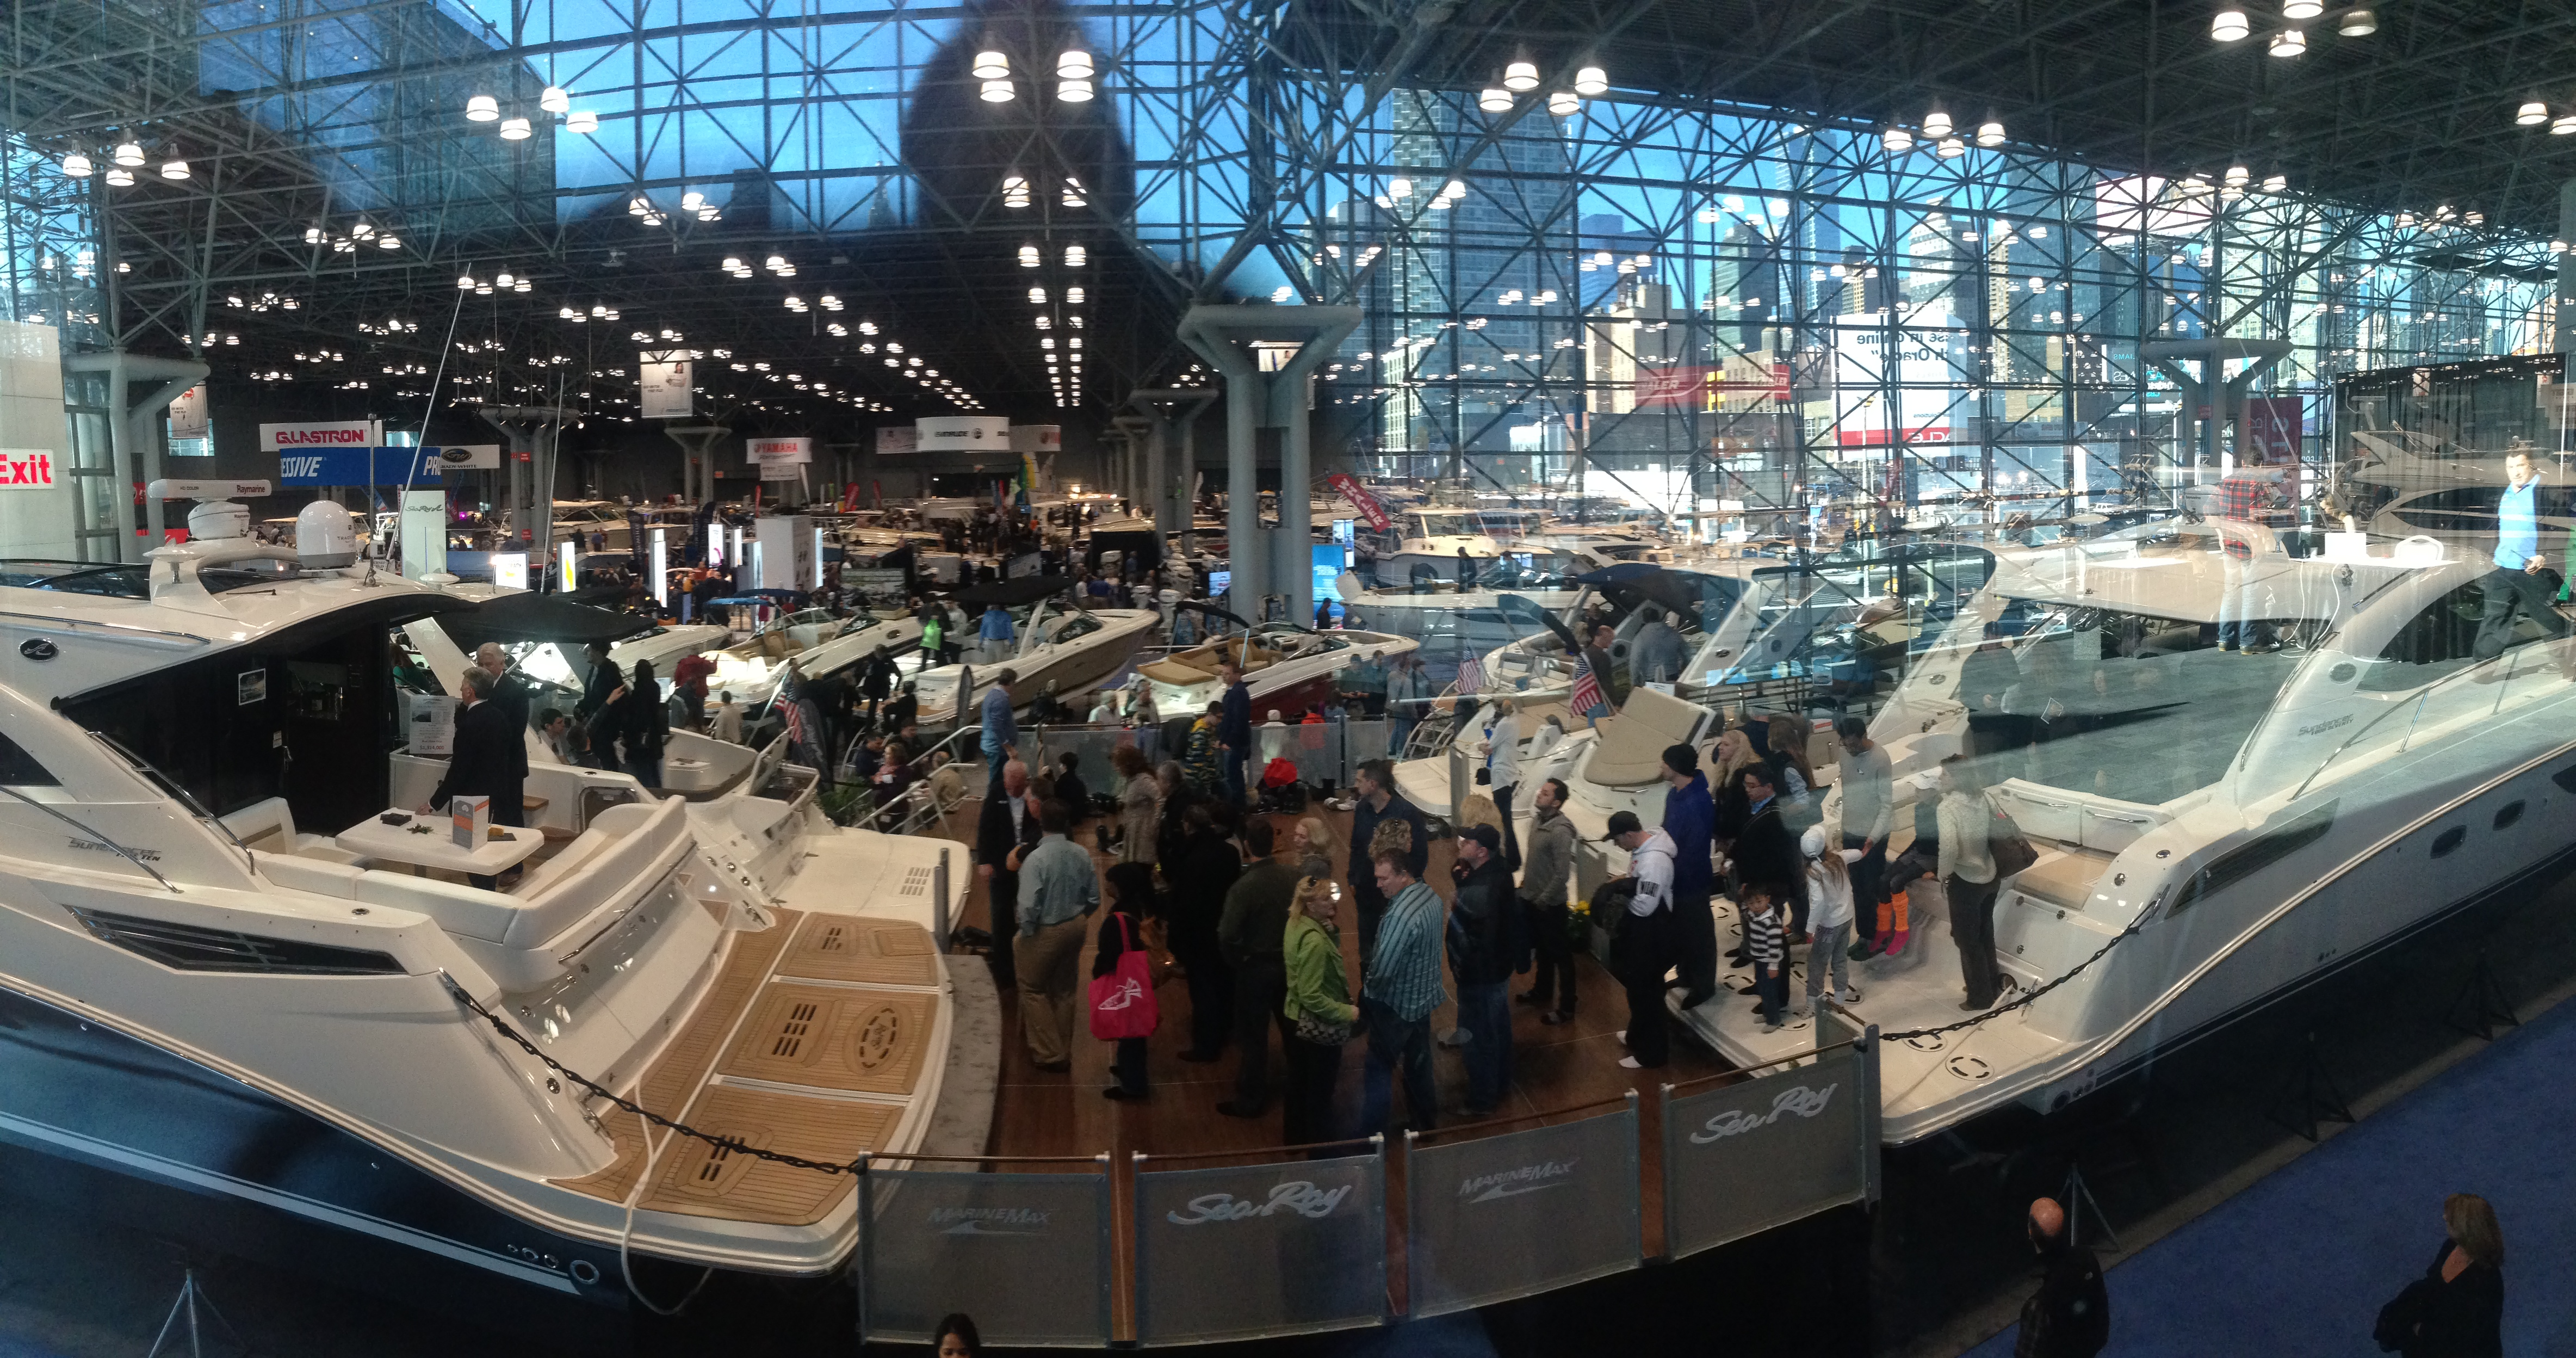 New York Boat Show Photo